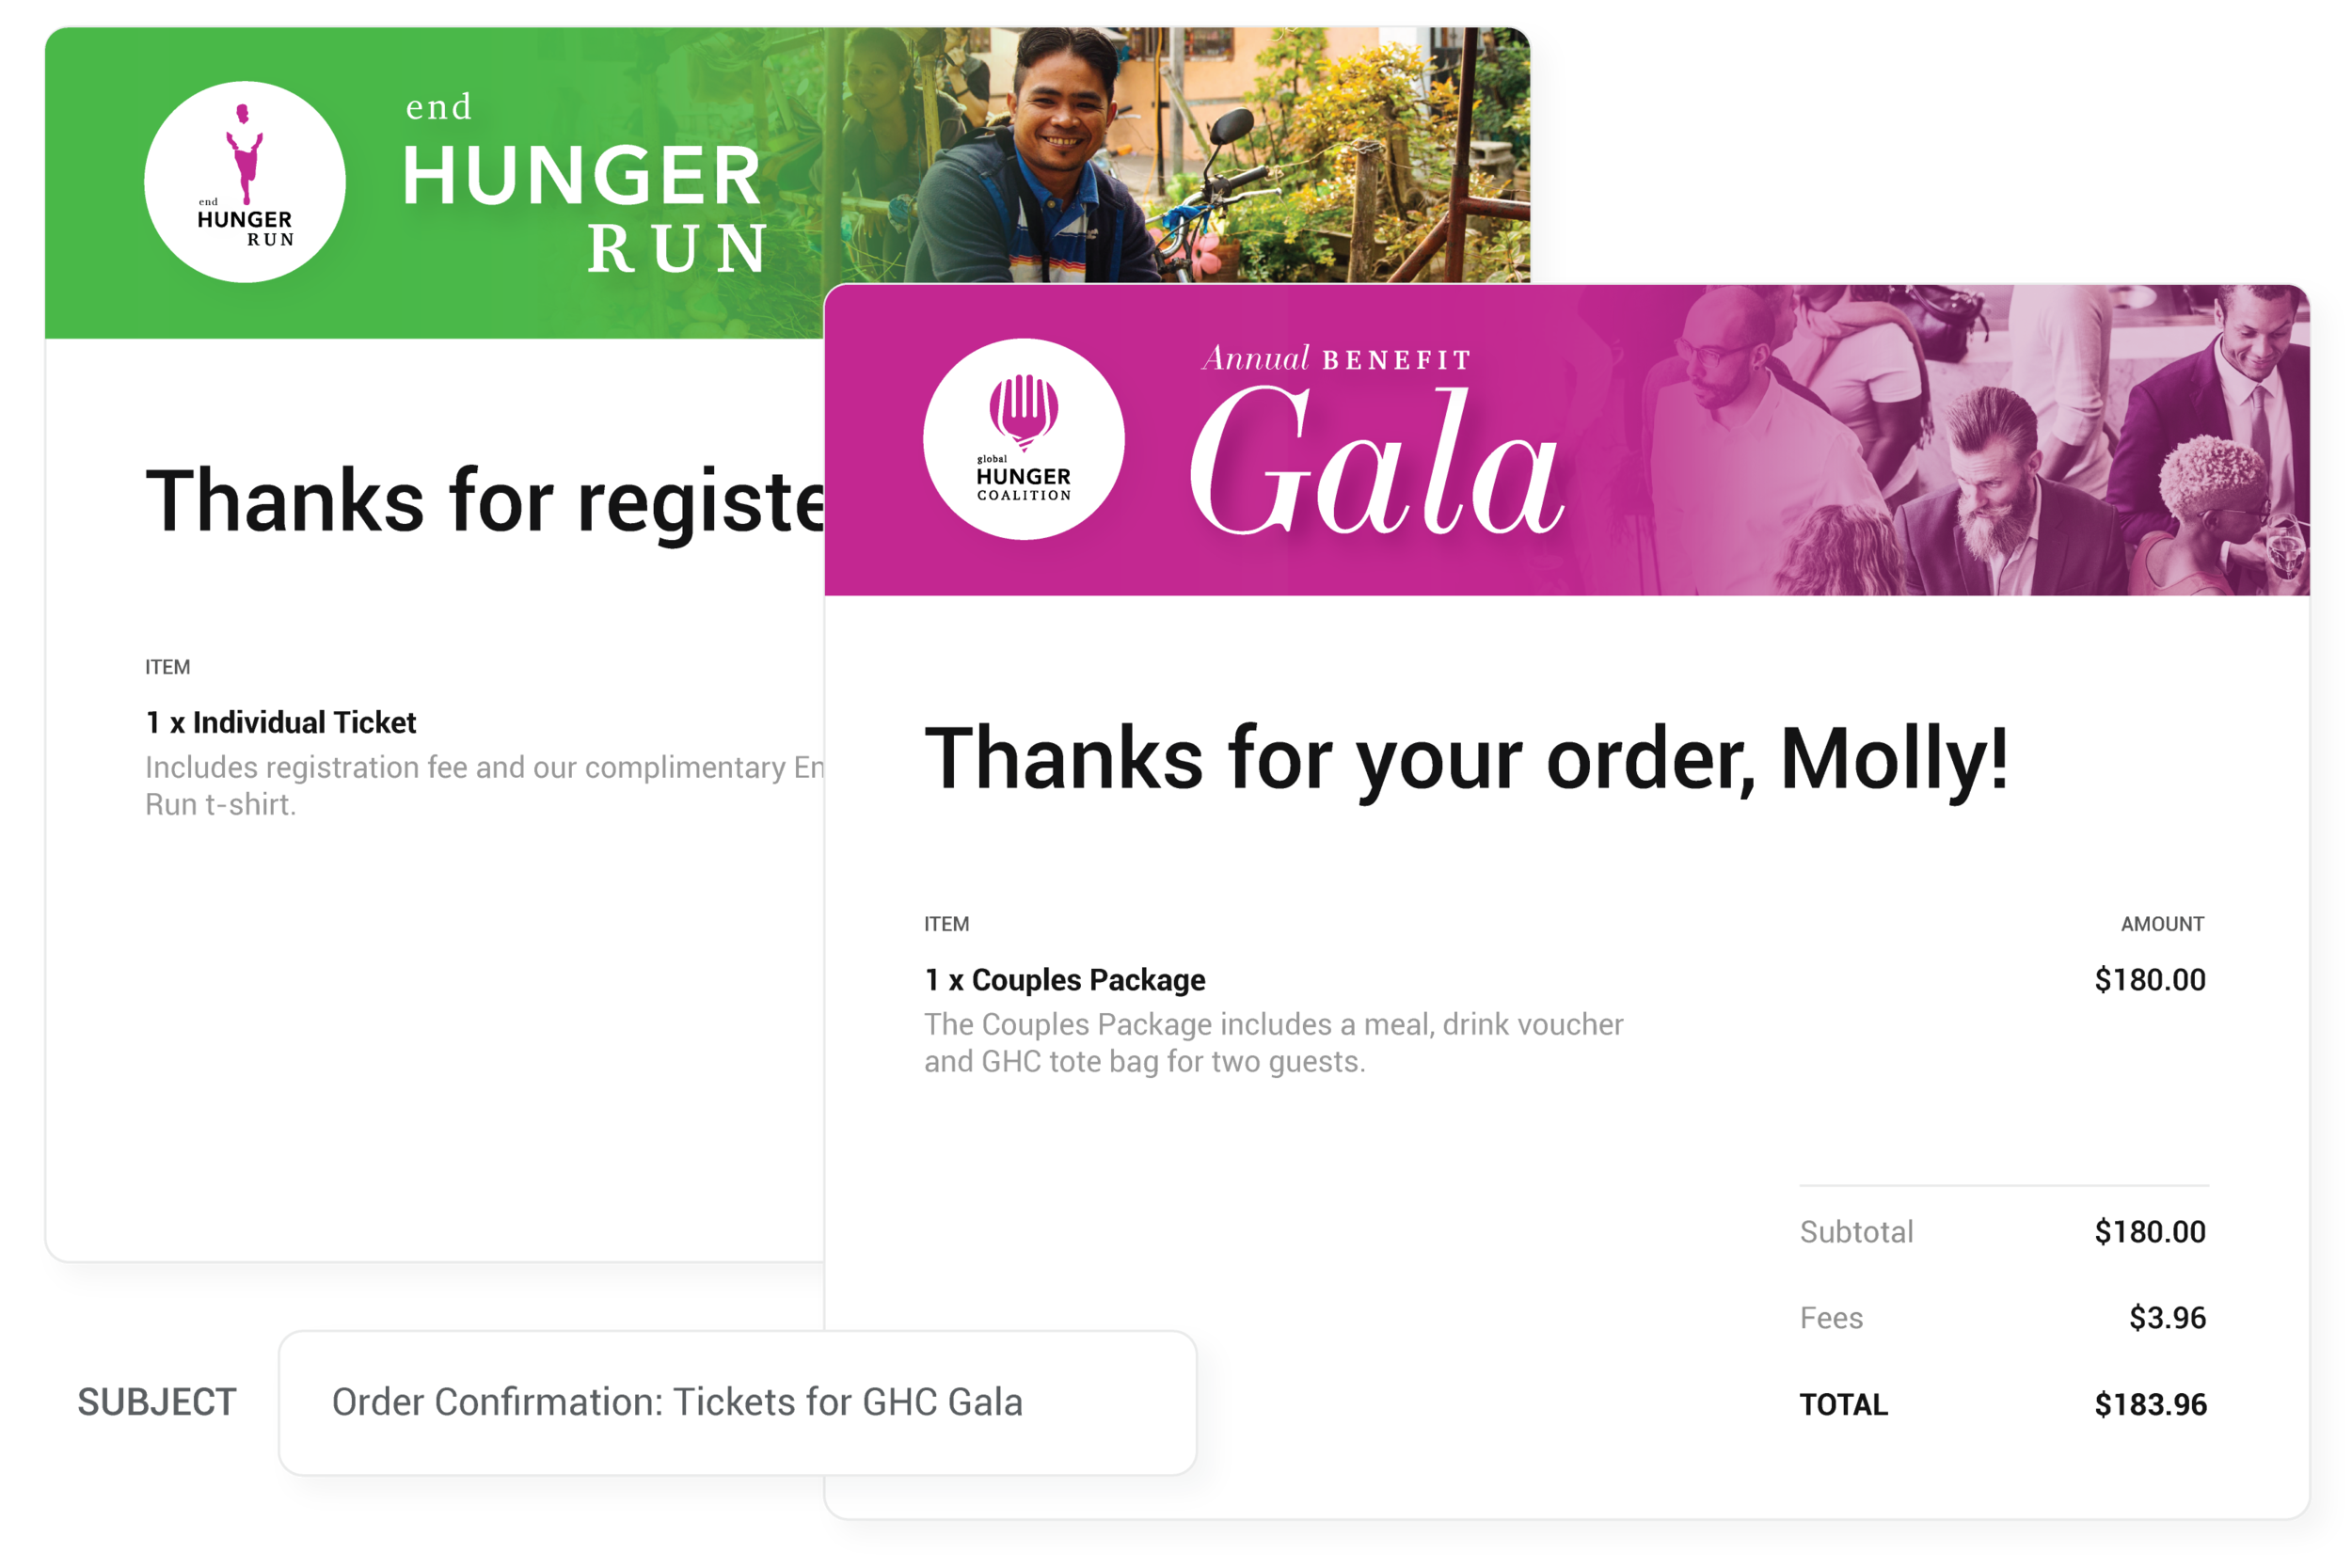 Automatic emails - Your guests will automatically receive an emailed receipt for their purchase. Customize the look to match your brand or event's unique design.